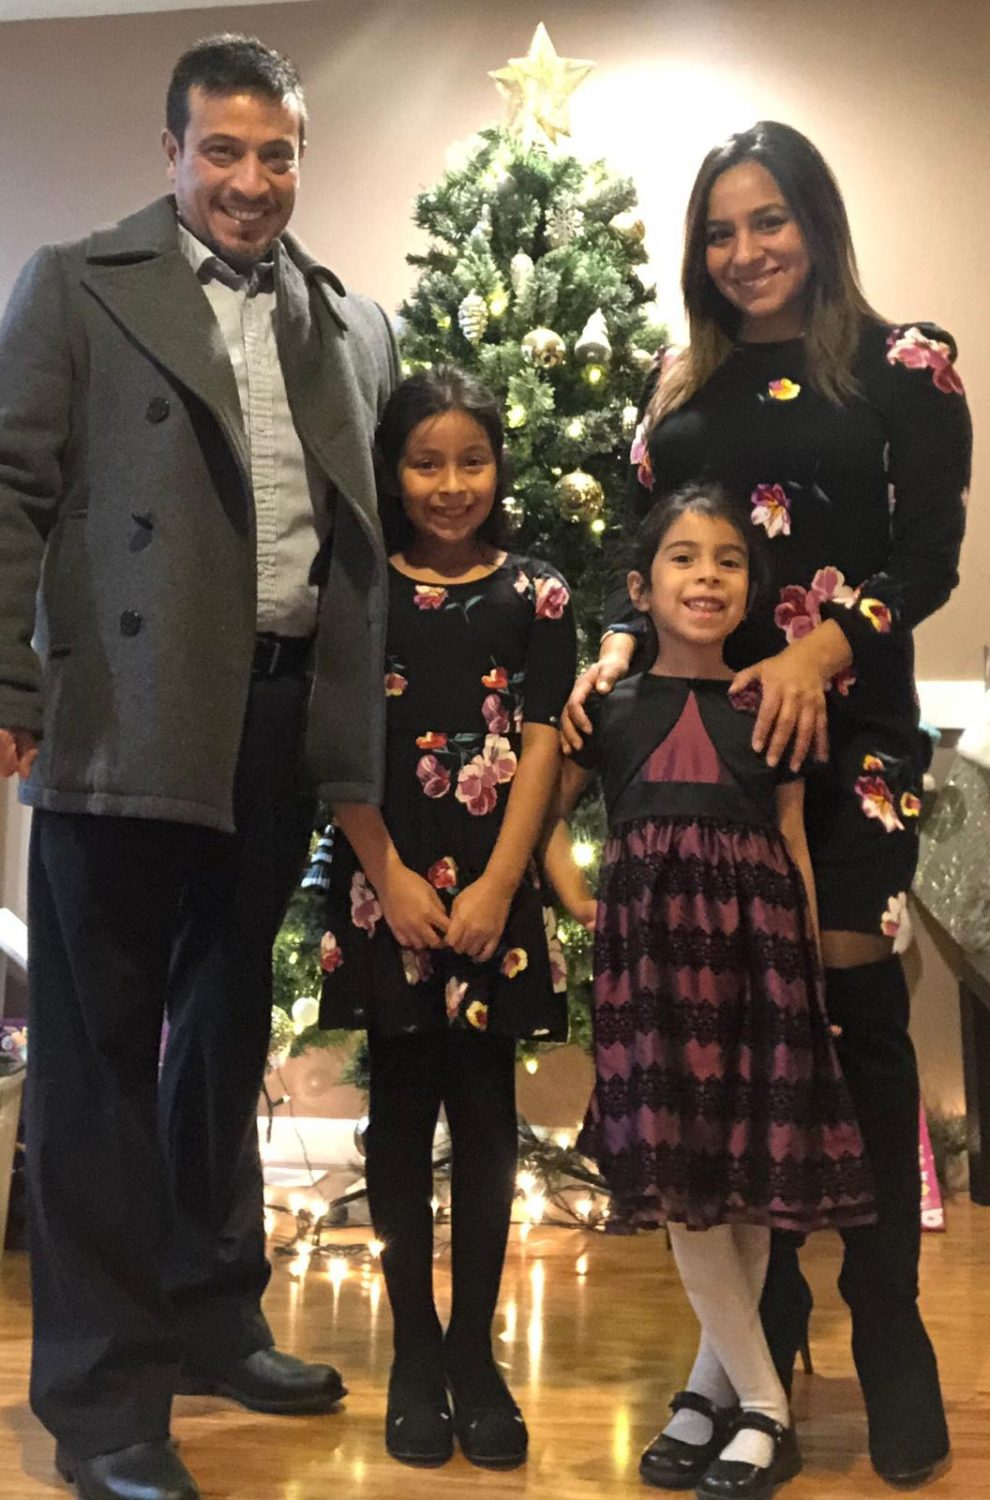 Victor Sanchez, LASM Treasurer, and his wife Heidi Sanchez, LASM Law and Culture Representative, stand with their two children in front of a Christmas tree smiling